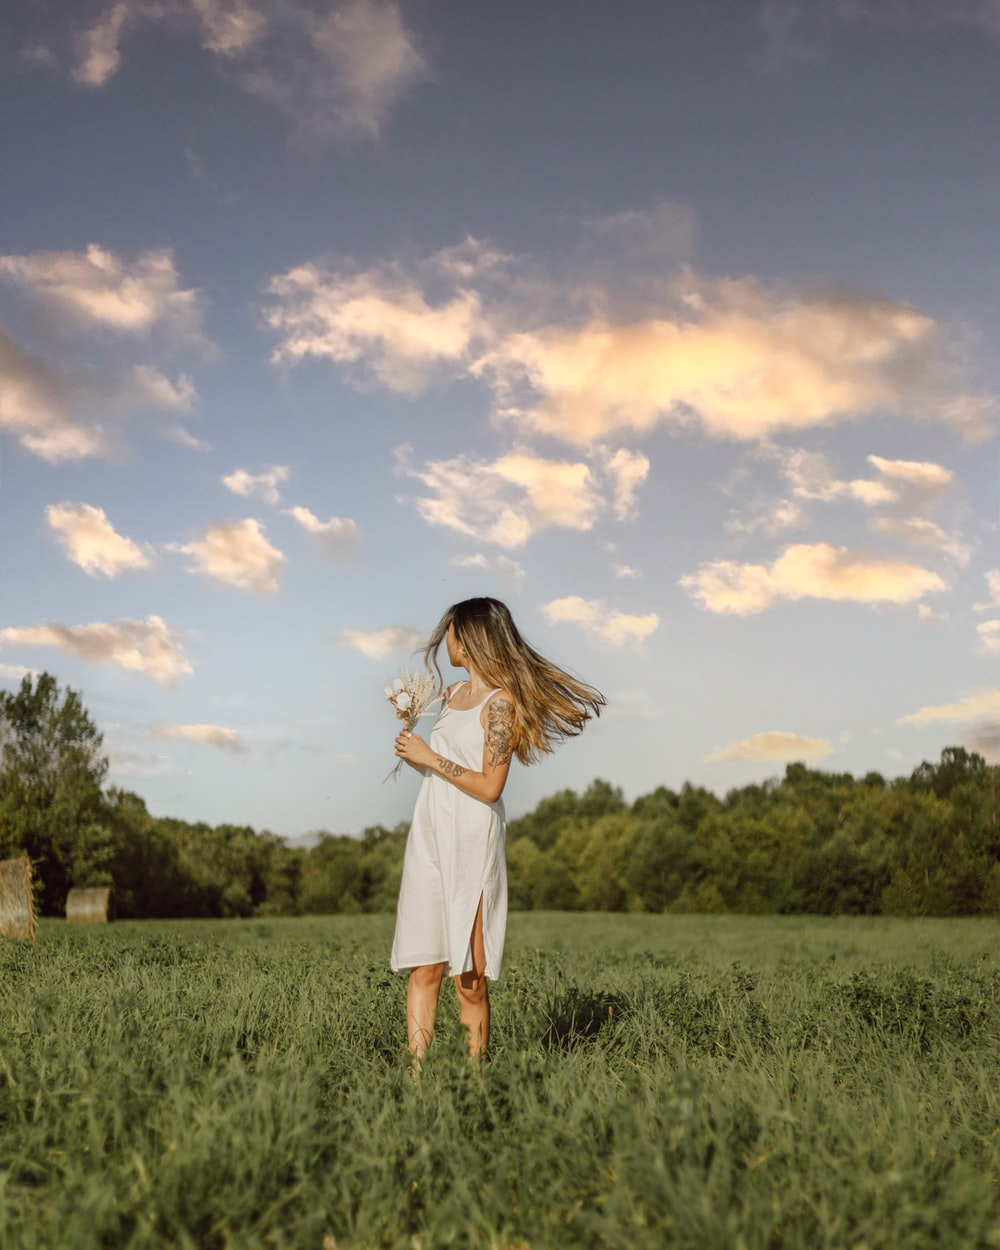 woman in white dress standing on green grass field under blue and white cloudy sky during